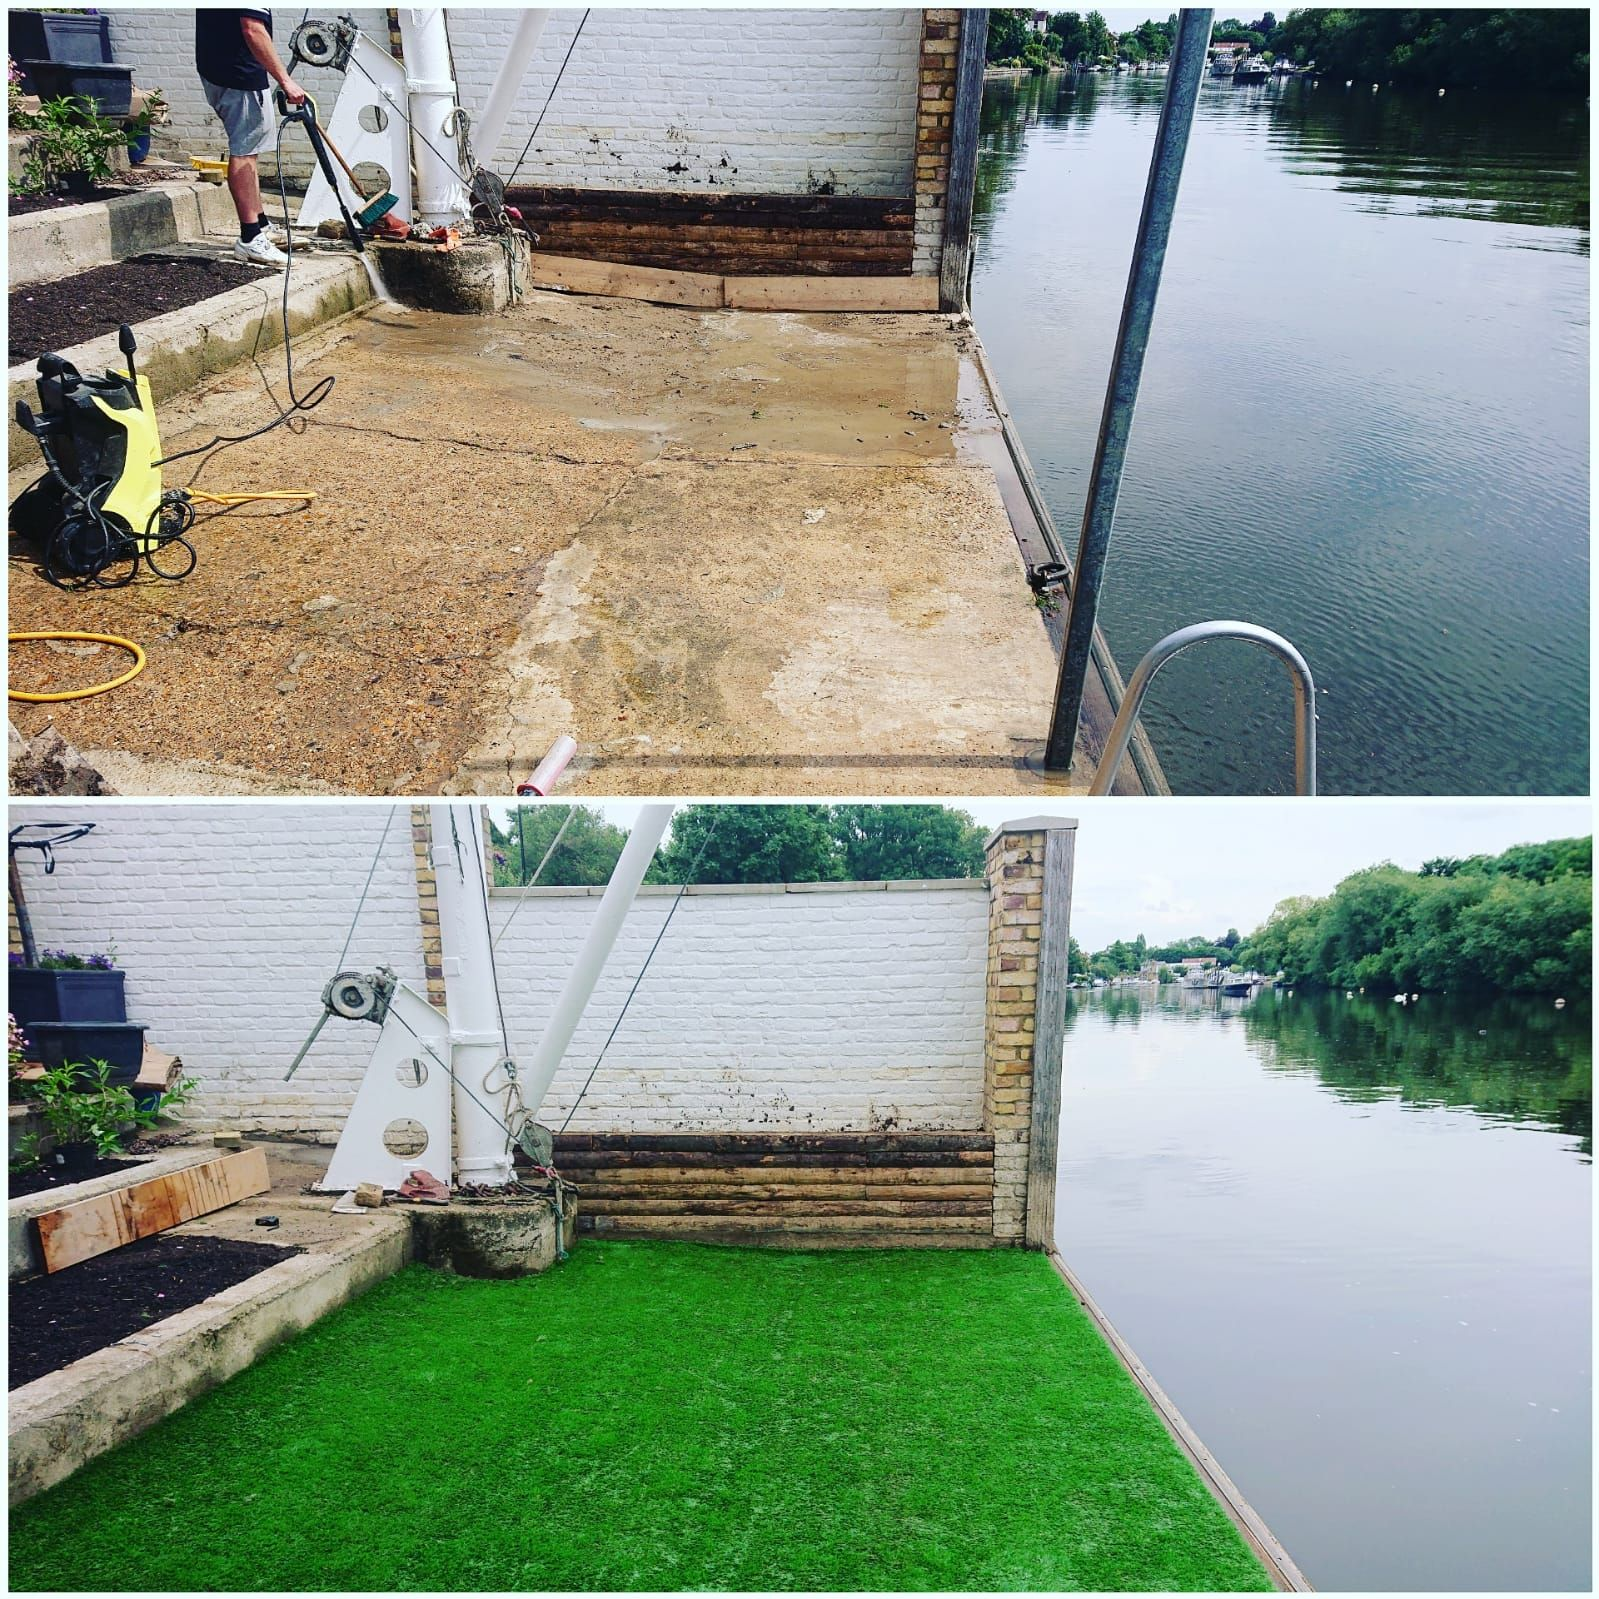 This was one of my favorite jobs, we couldn't have worked any closer to the river! To find out how to lay your very own artificial grass, build your own flowerbed or anything else garden related, be sure to follow our website!  #gardening #gardener #gardenblog #gardeningblog #landscaping #landscapegardening #gardenideas